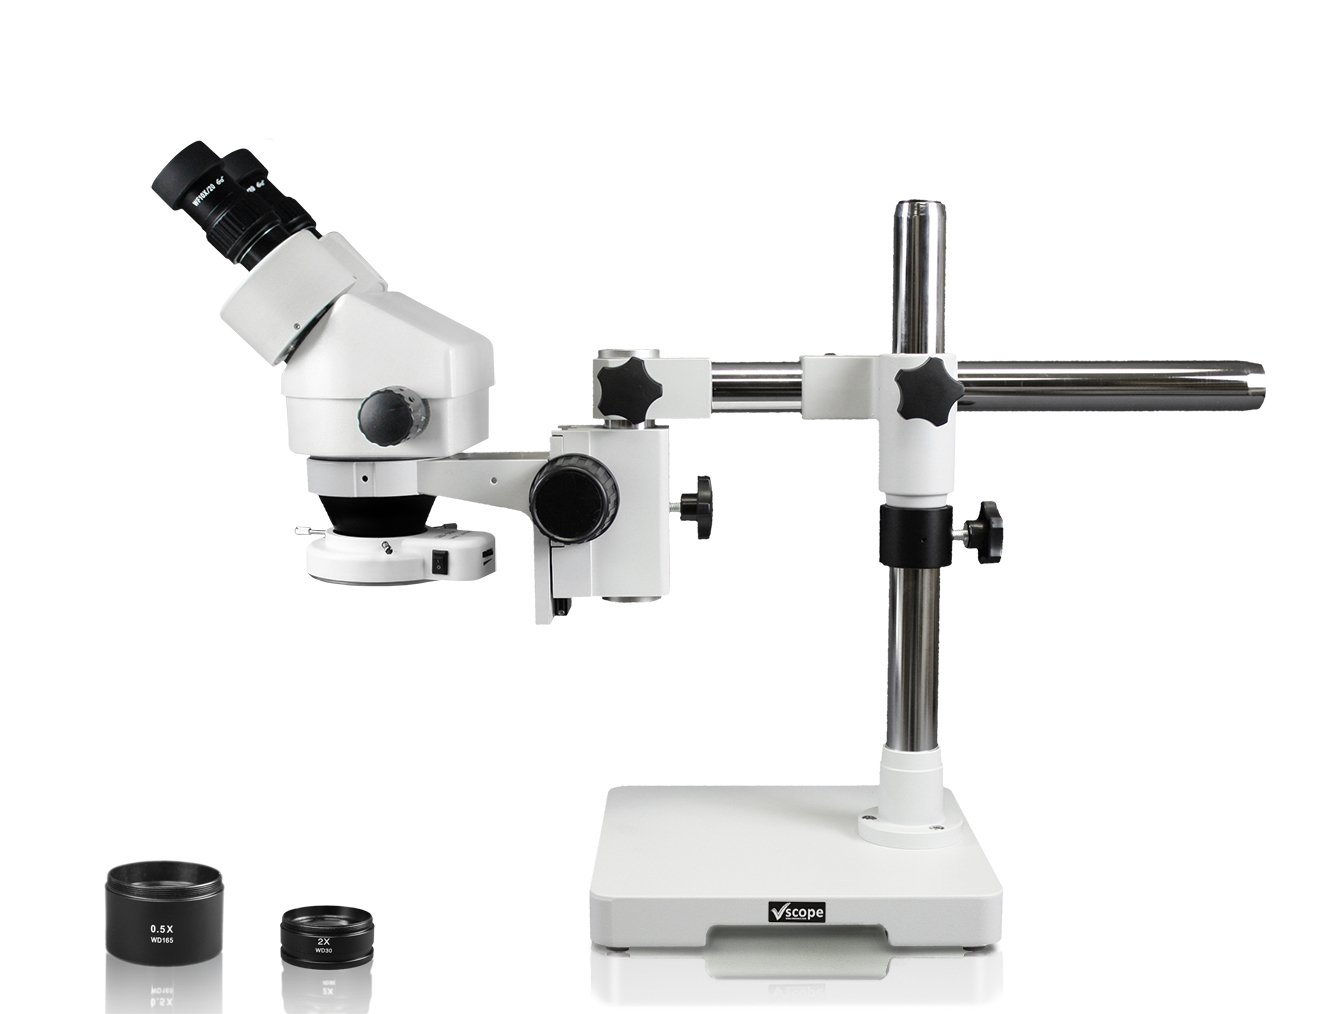 Vision Scientific VS-3EZ-IFR07 Binocular Zoom Stereo Microscope, 10x WF Eyepiece, 0.7X-4.5X Zoom, 3.5X-90x Magnification, 0.5X & 2X Auxiliary Lens, Single Arm Boom Stand, 144-LED Ring Light by Vision Scientific